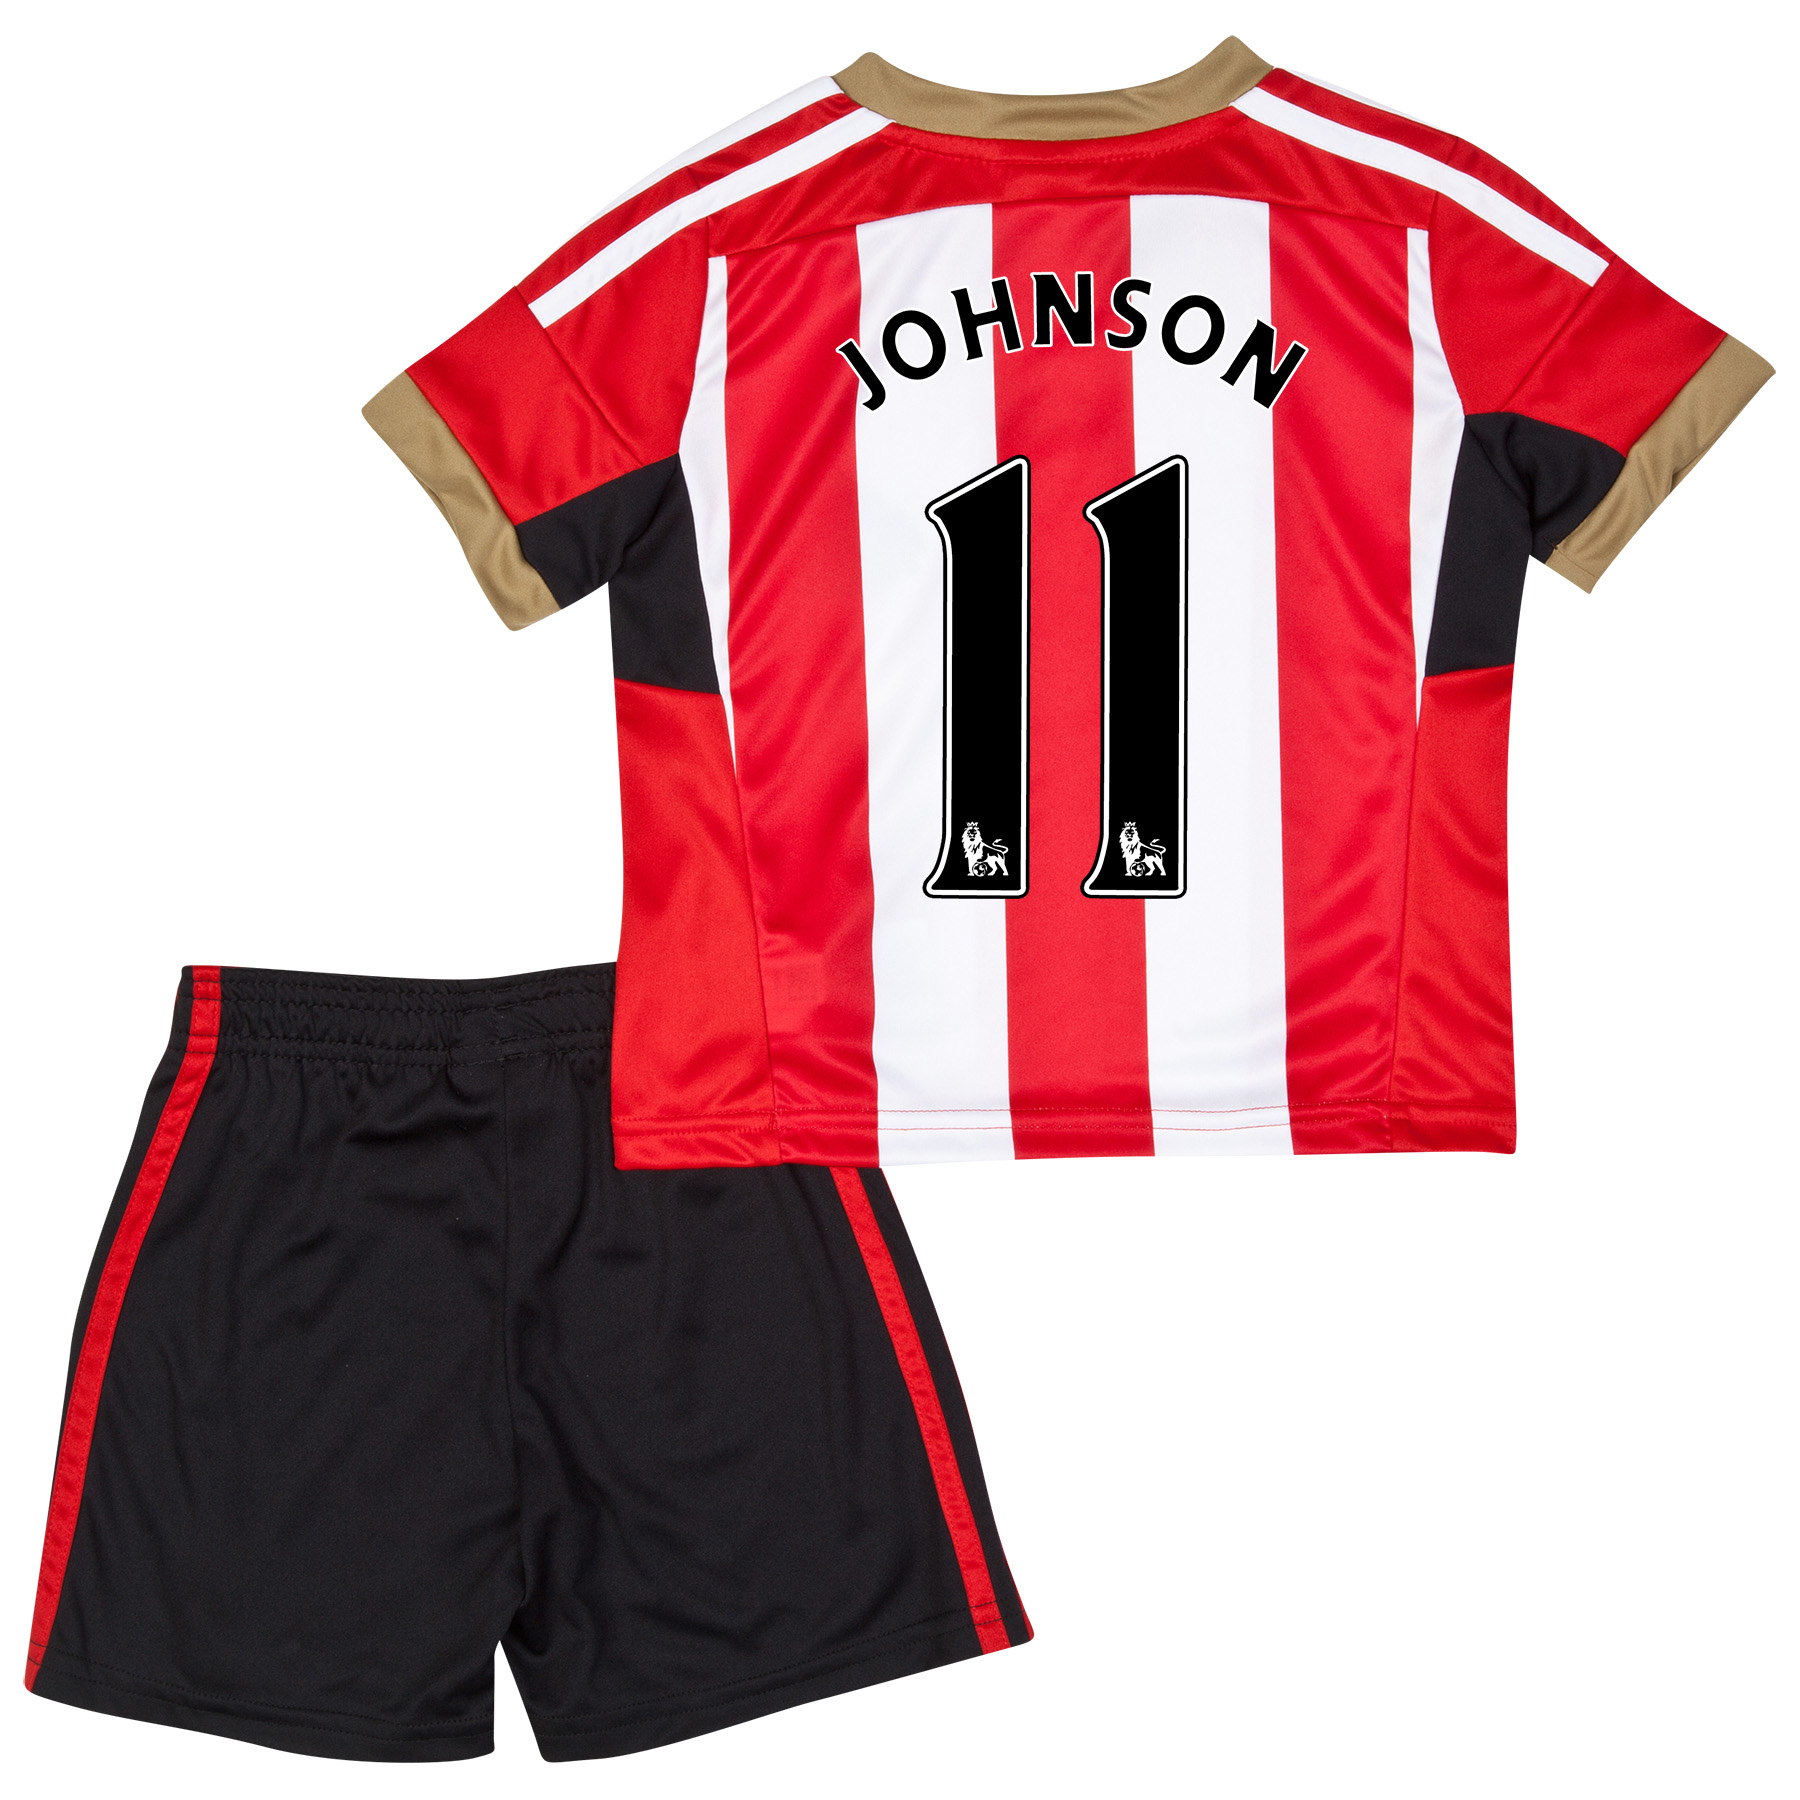 Sunderland Mini Kit 2014/15 Red with Johnson 11 printing